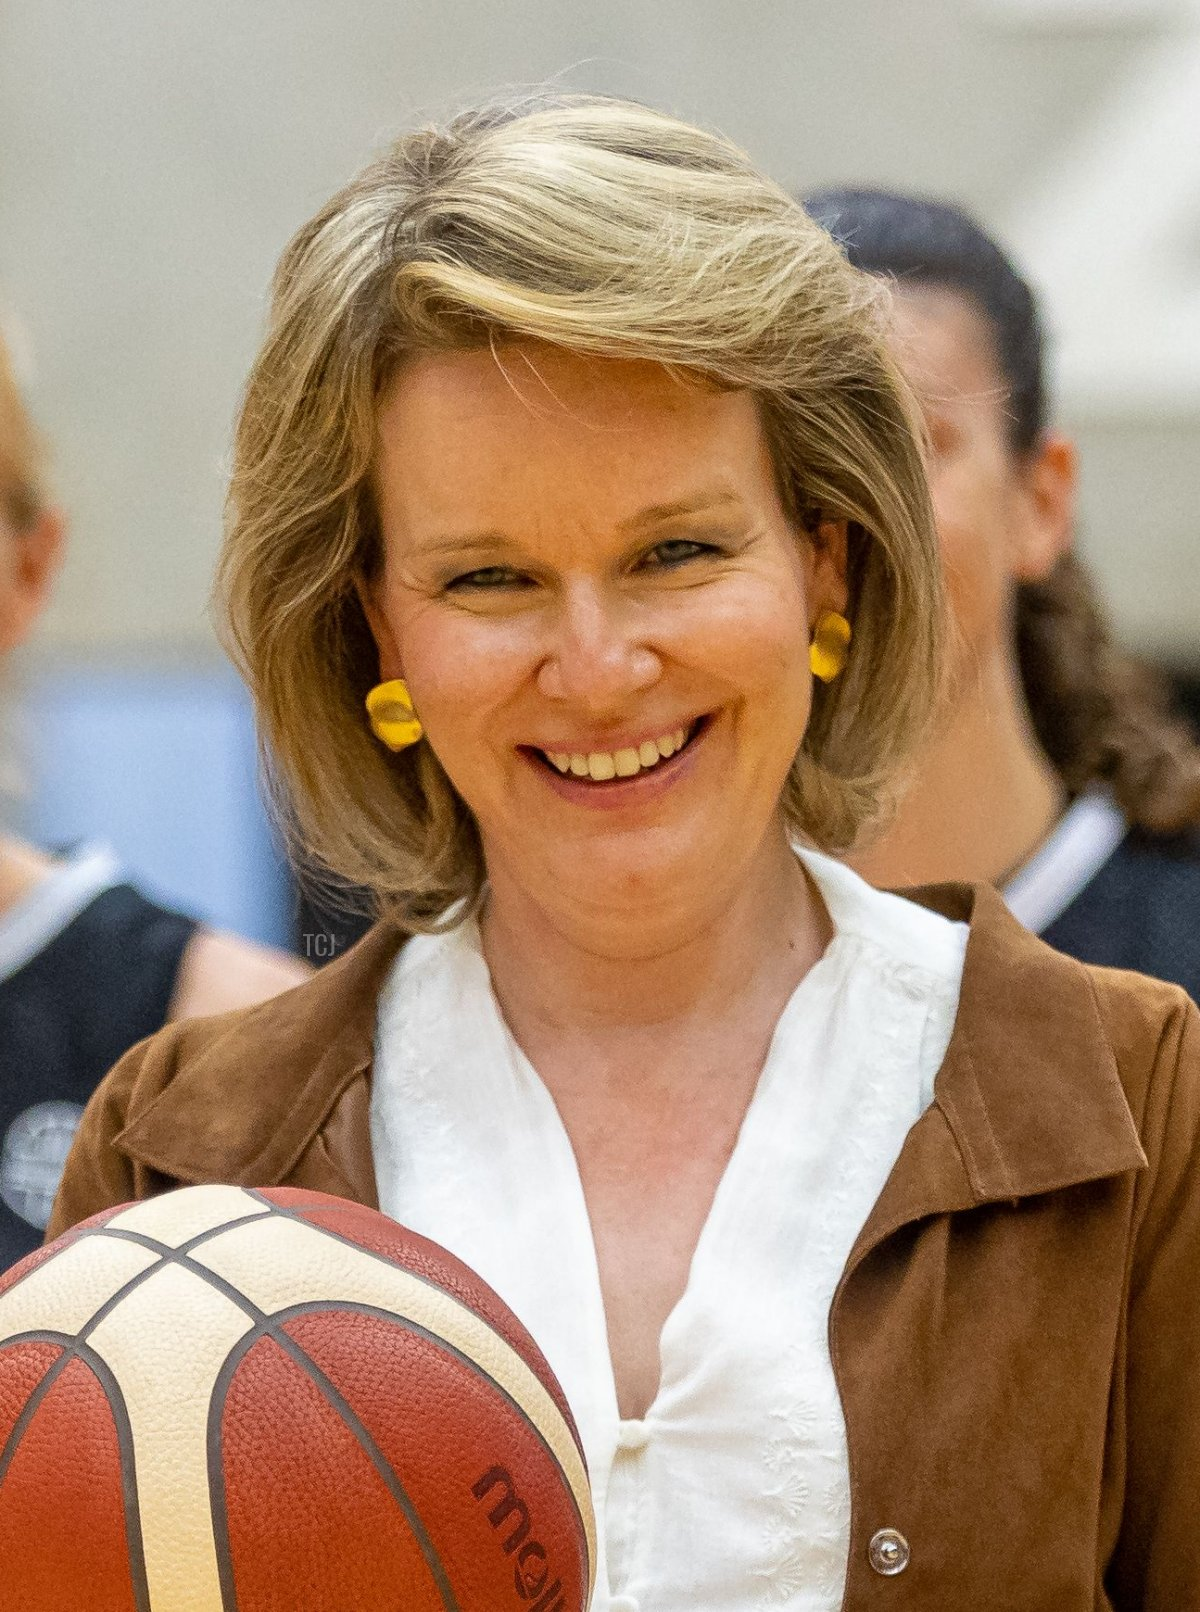 Queen Mathilde of Belgium holds a basketball during a visit to the Belgian Cats, the Belgian national women's basketball team, in Kortrijk, on June 2021